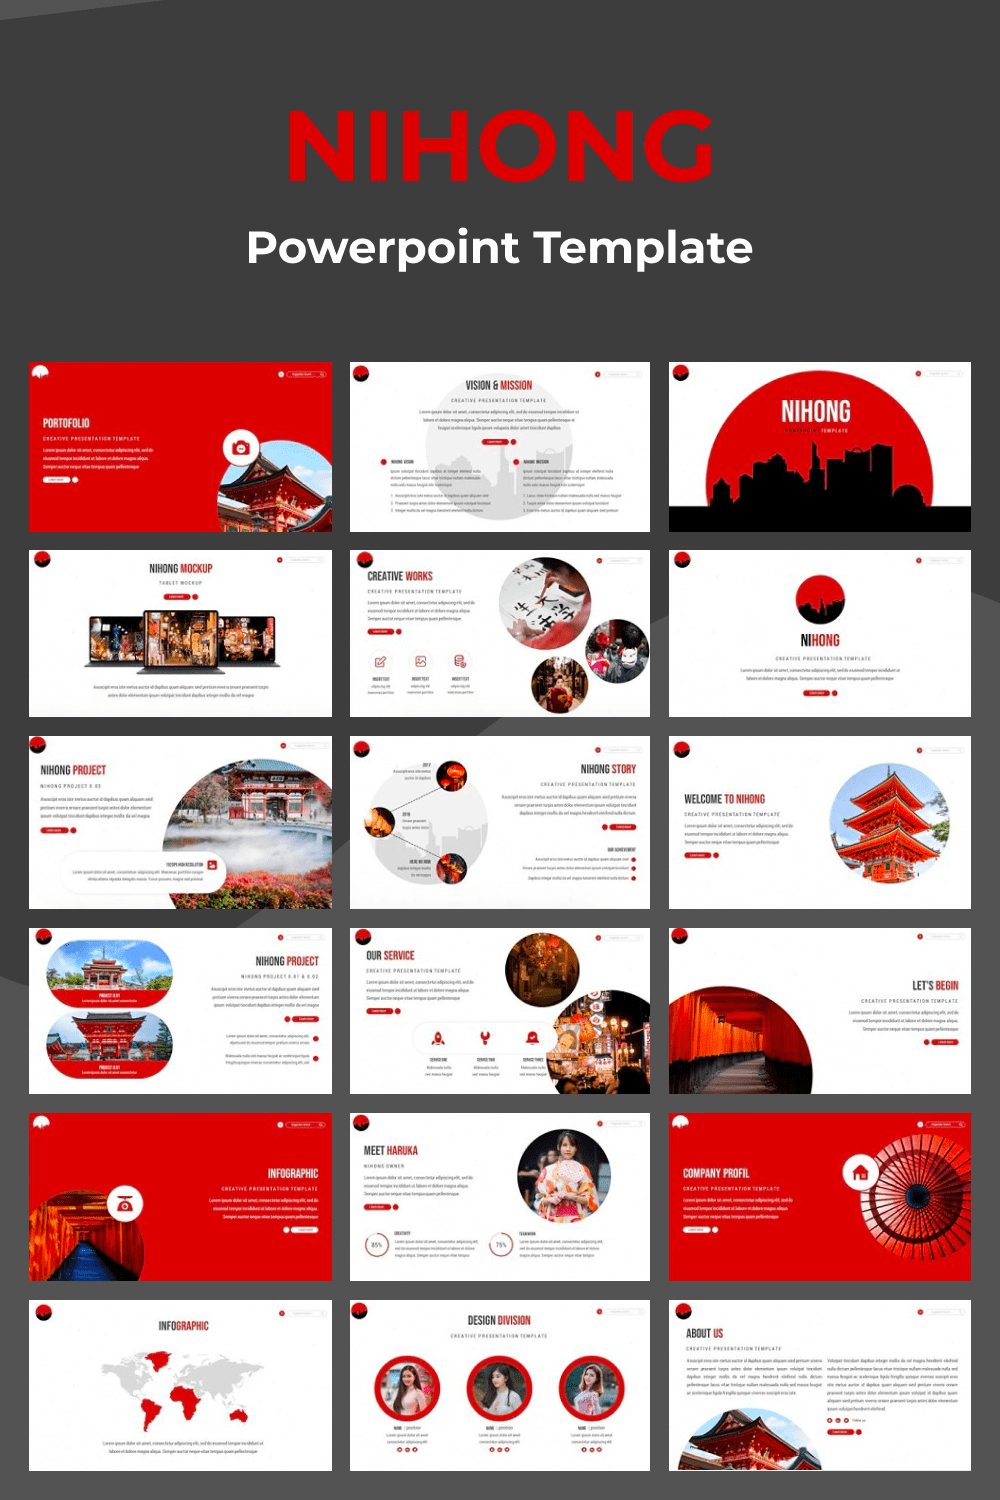 There are distinctive Japanese features here that make the template themed and unique.